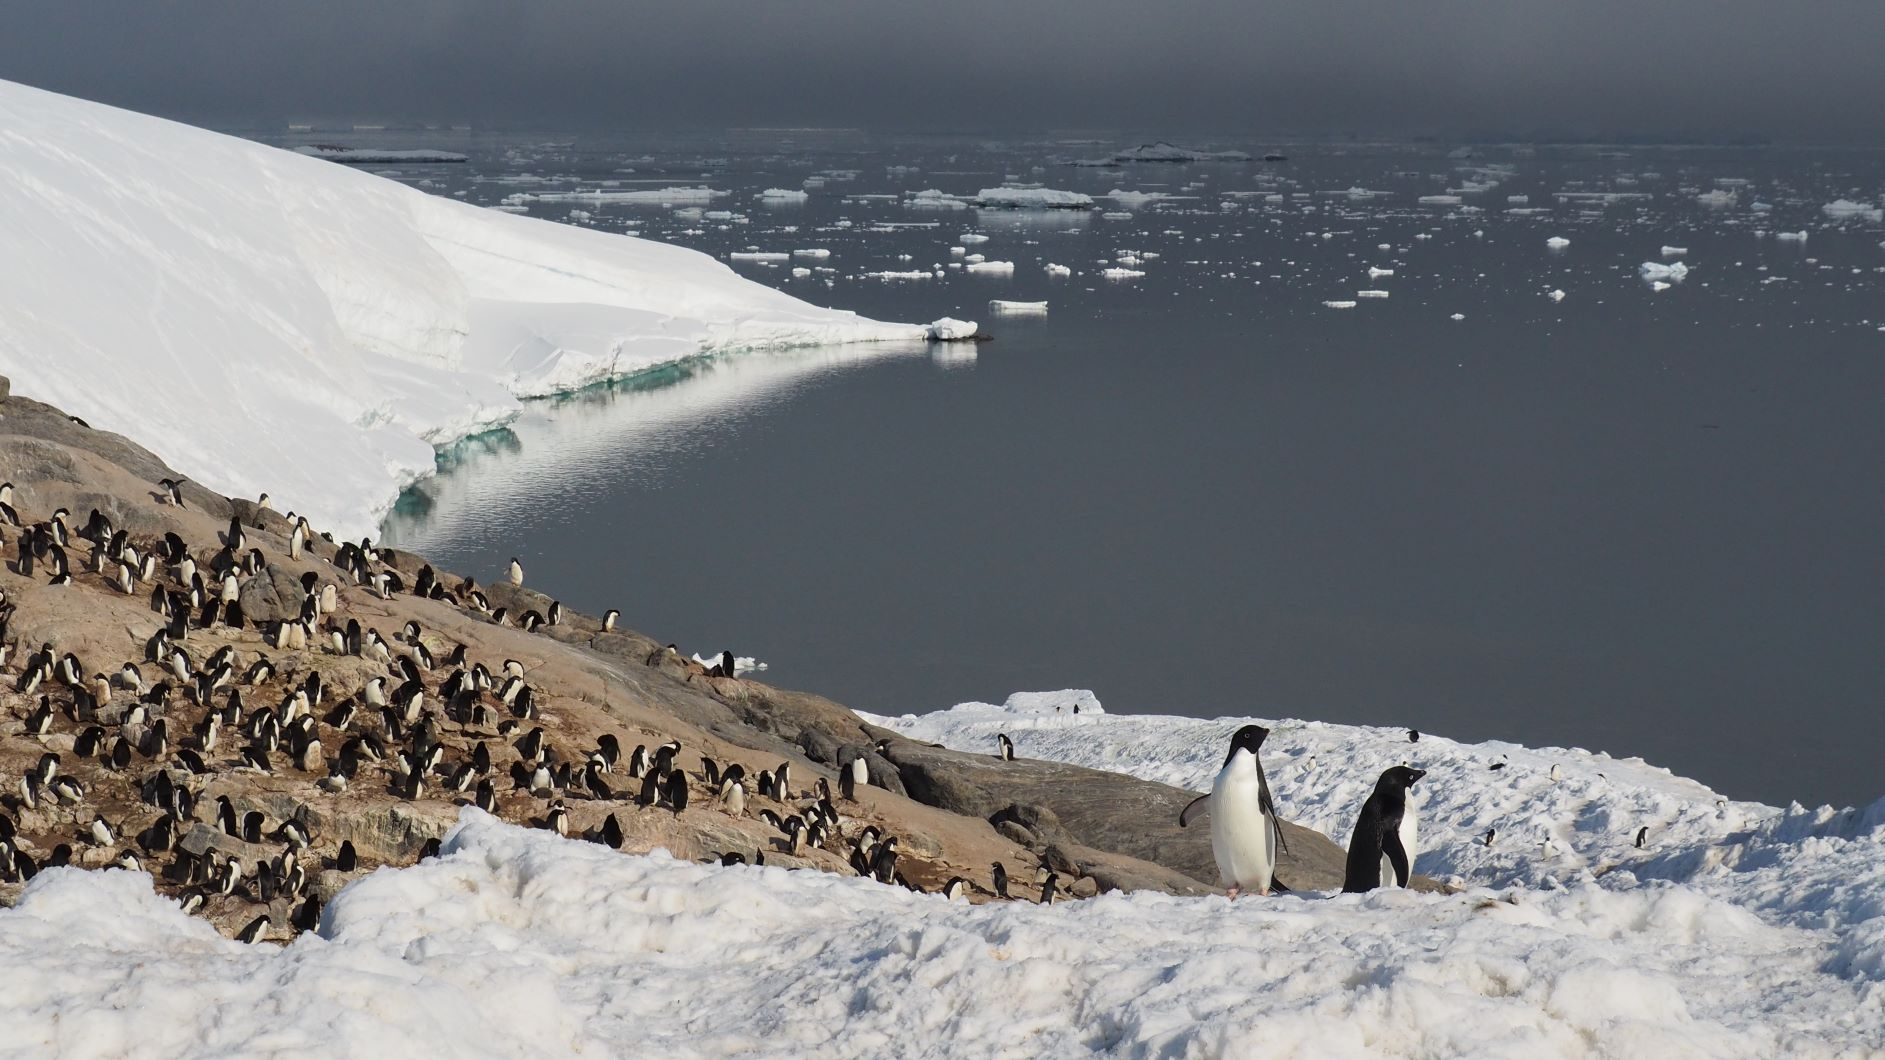 A colony of Adelie penguins breeds on a partly naked partly snow-covered rock. Behind it you can see the ice-free sea.